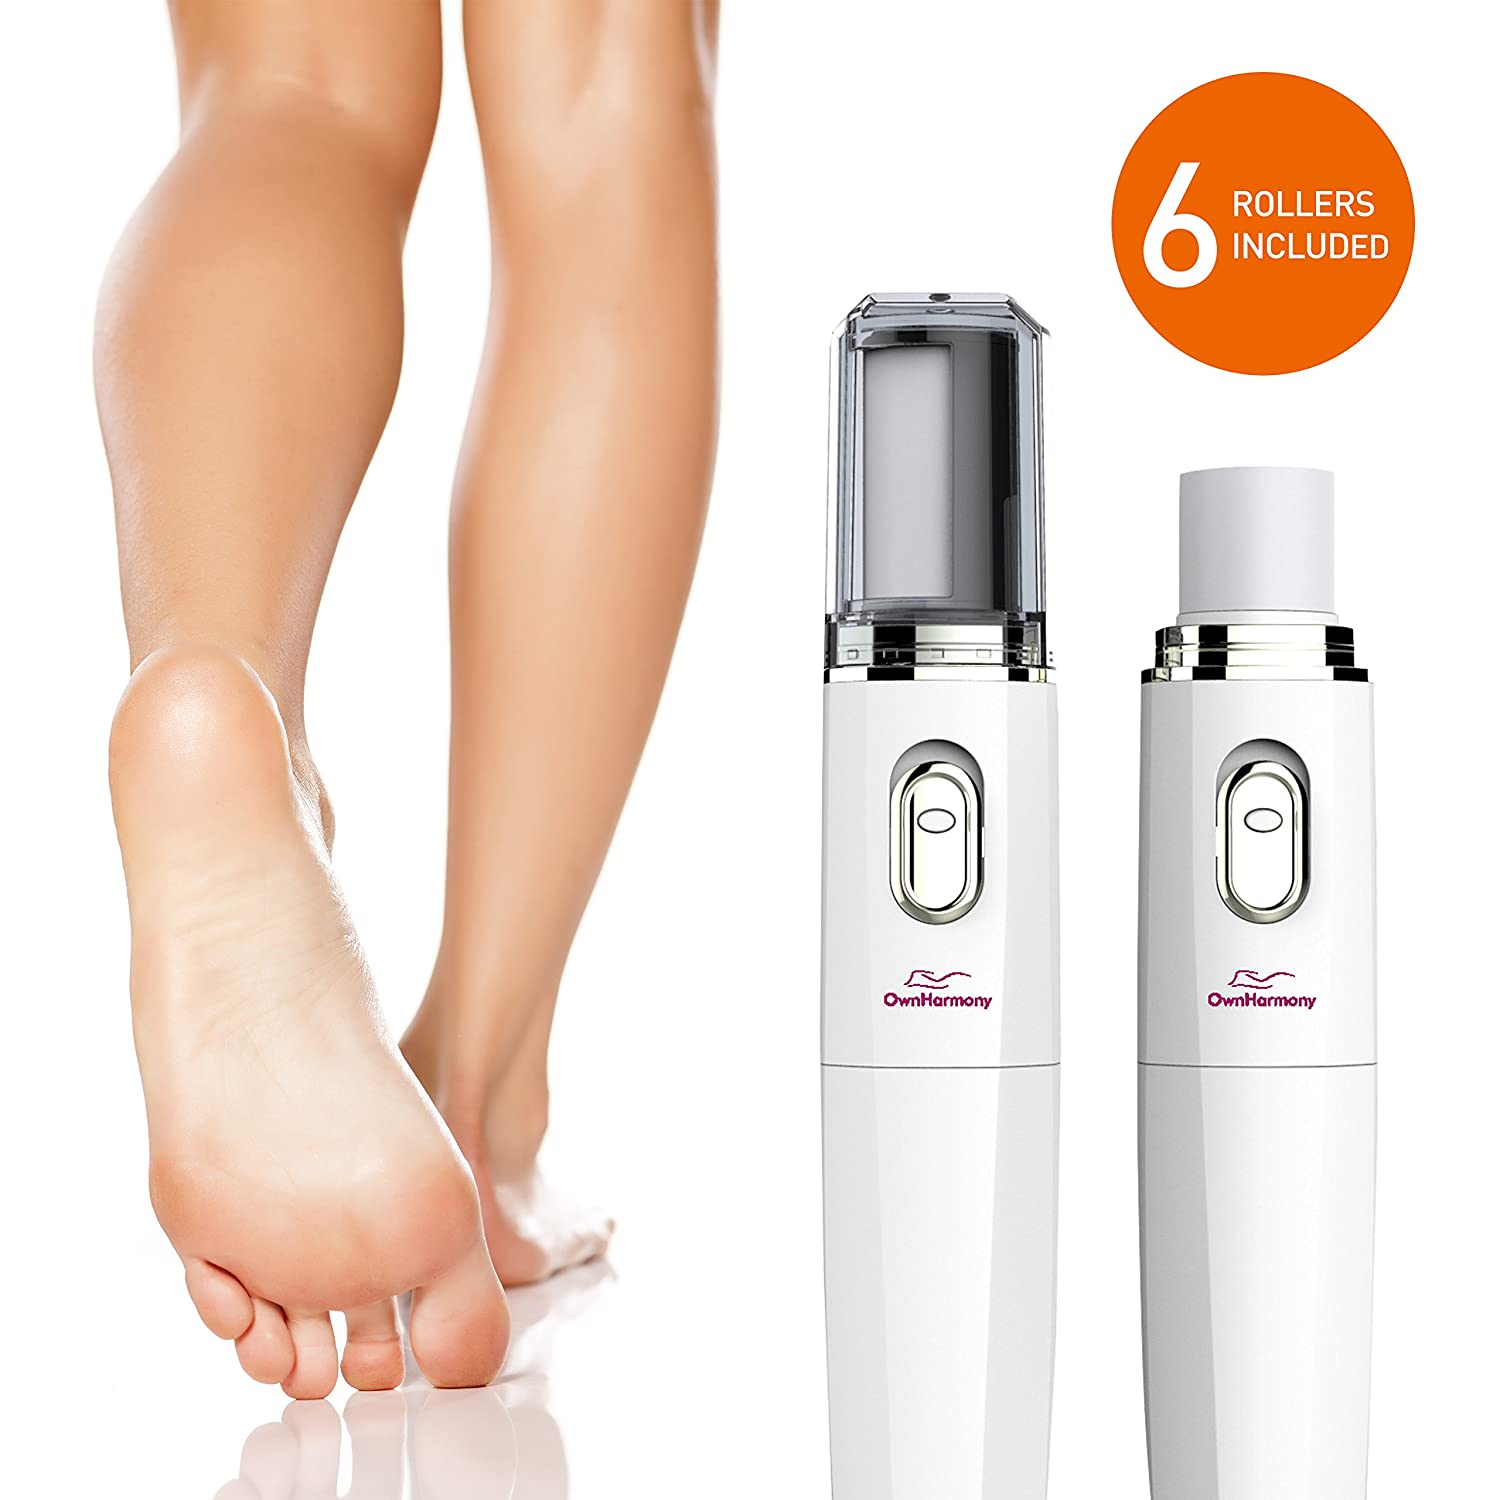 Electric Foot File Callus Remover & Electronic Nail File (4 in 1) Best Mani Pedi Tools - Perfect Professional Manicure & Pedicure Care Set by Own Harmony